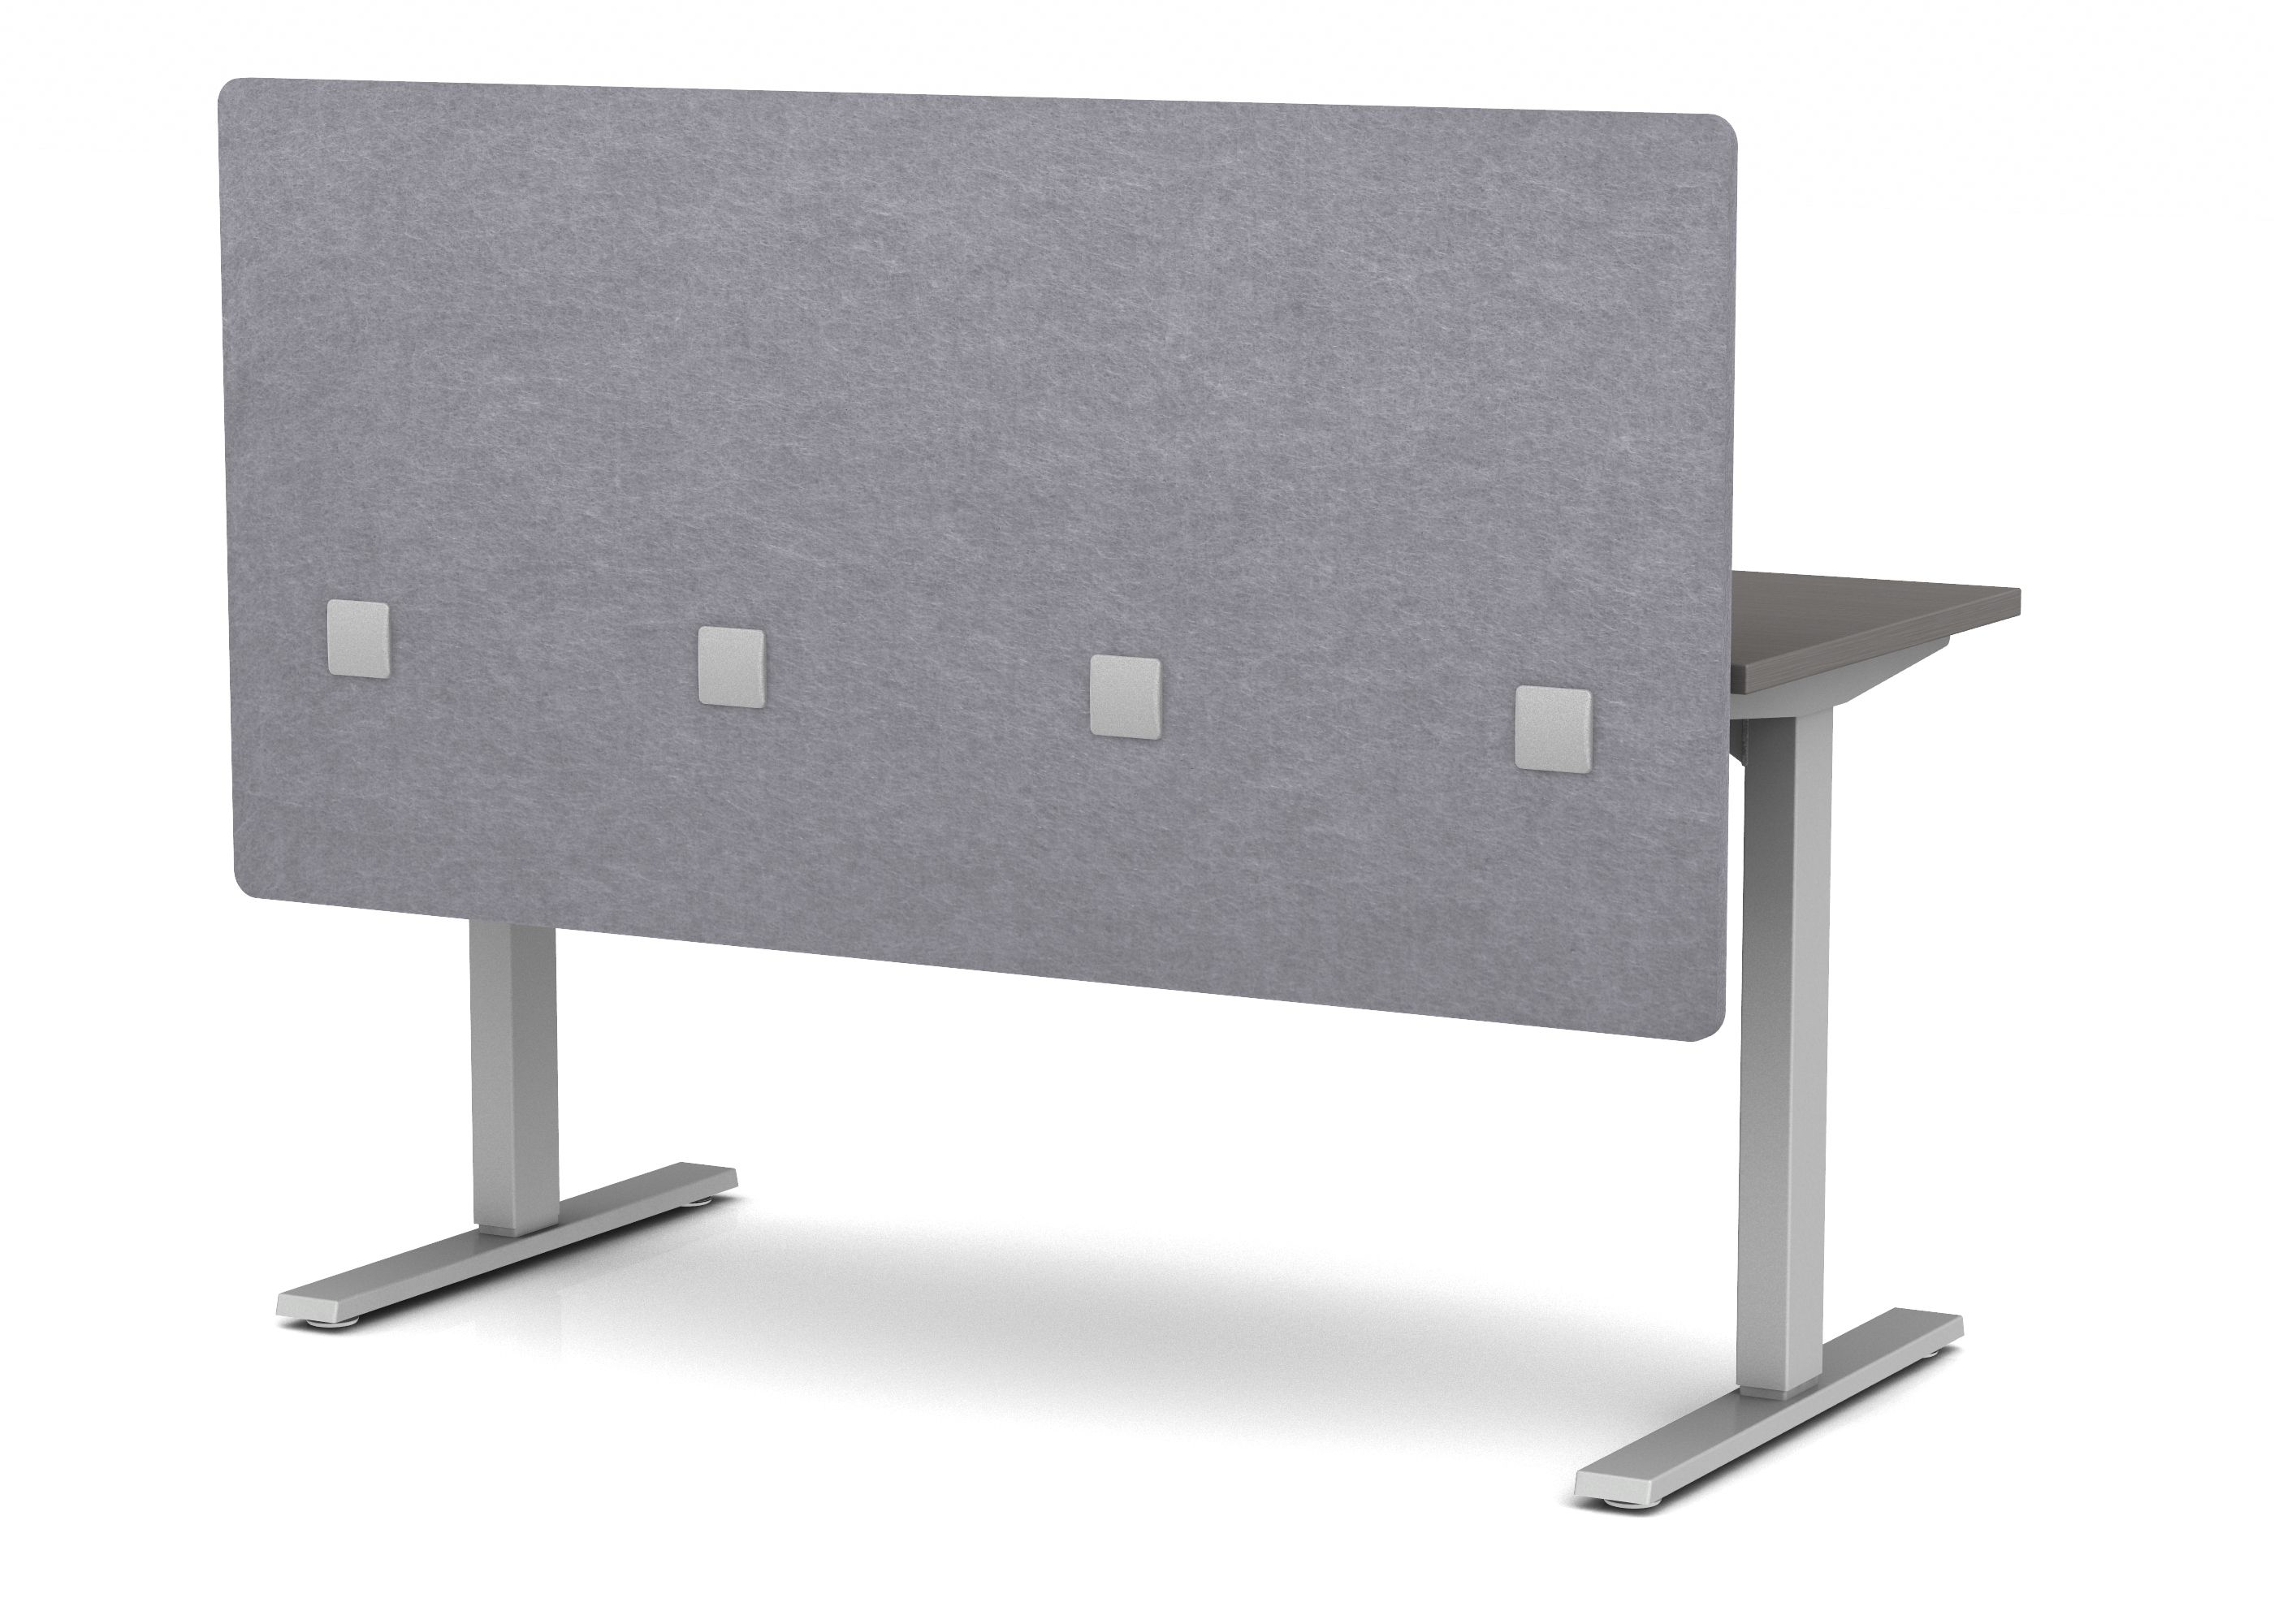 Midtown Desk Divider Desk Dividers Privacy Panels Partition Wall